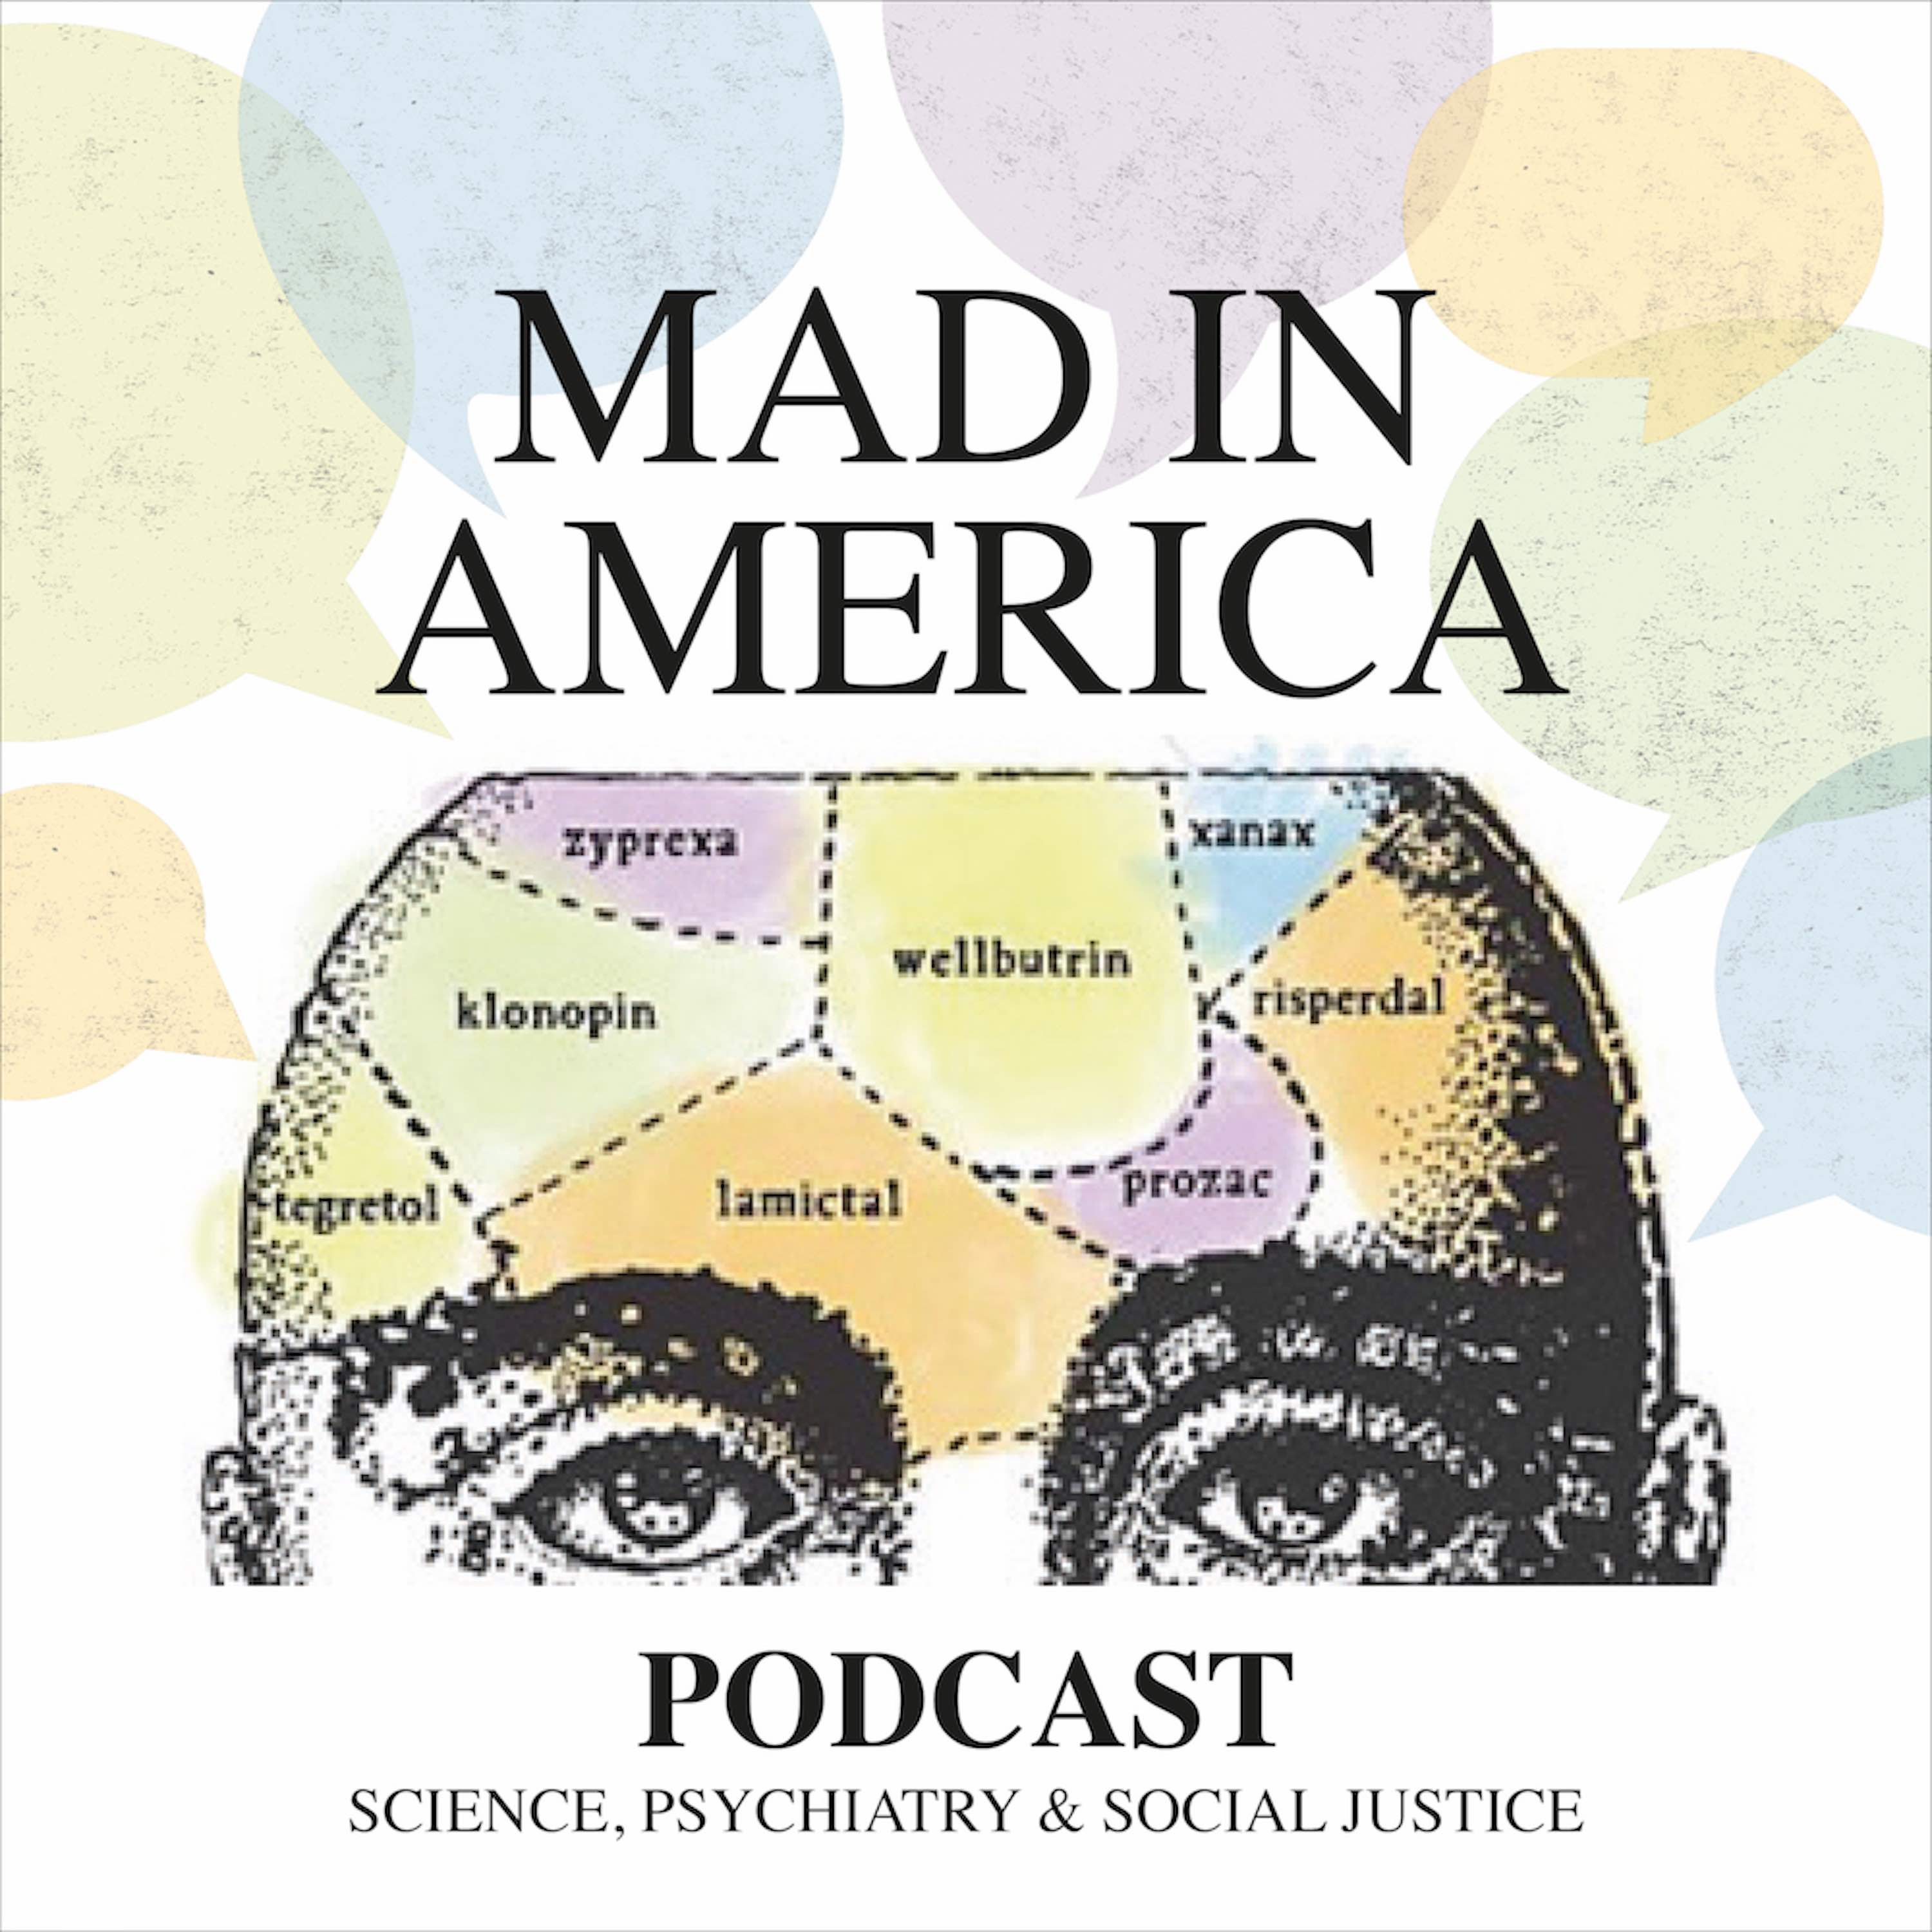 Mad in America: Rethinking Mental Health - Duncan Double - On Being a Critical Psychiatrist